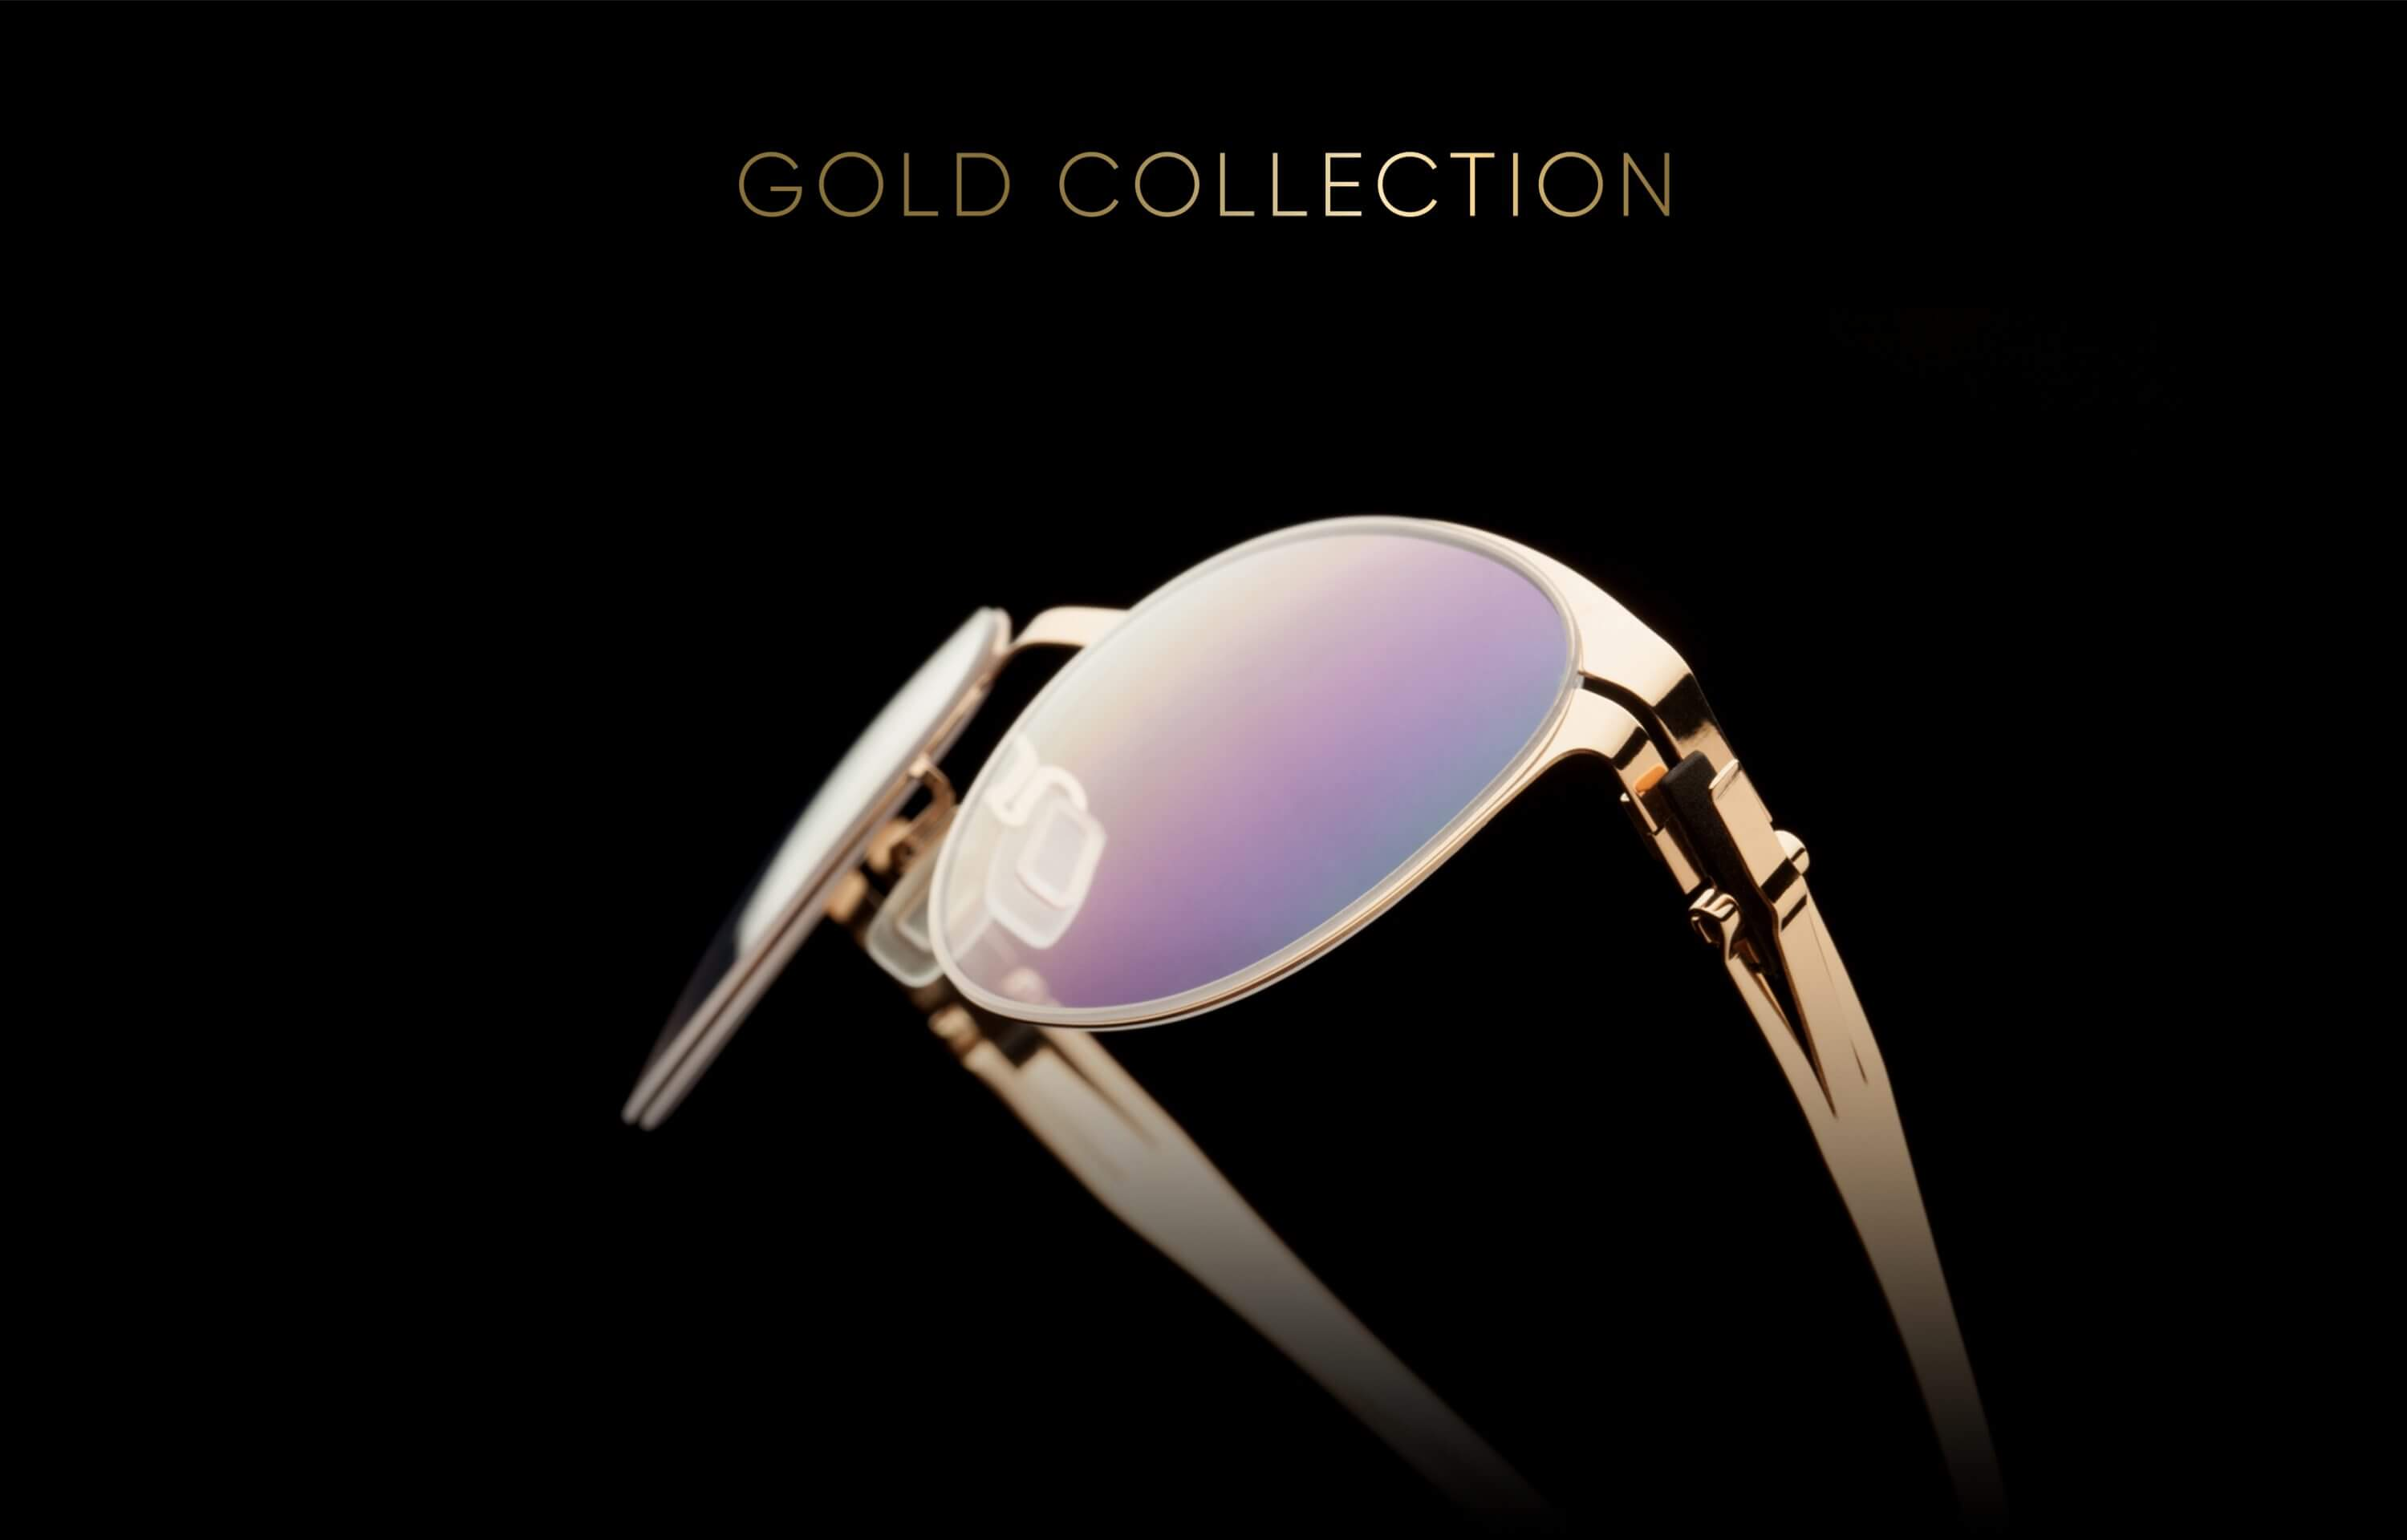 OVVO Optics 14KT Limited Edition Gold Collection